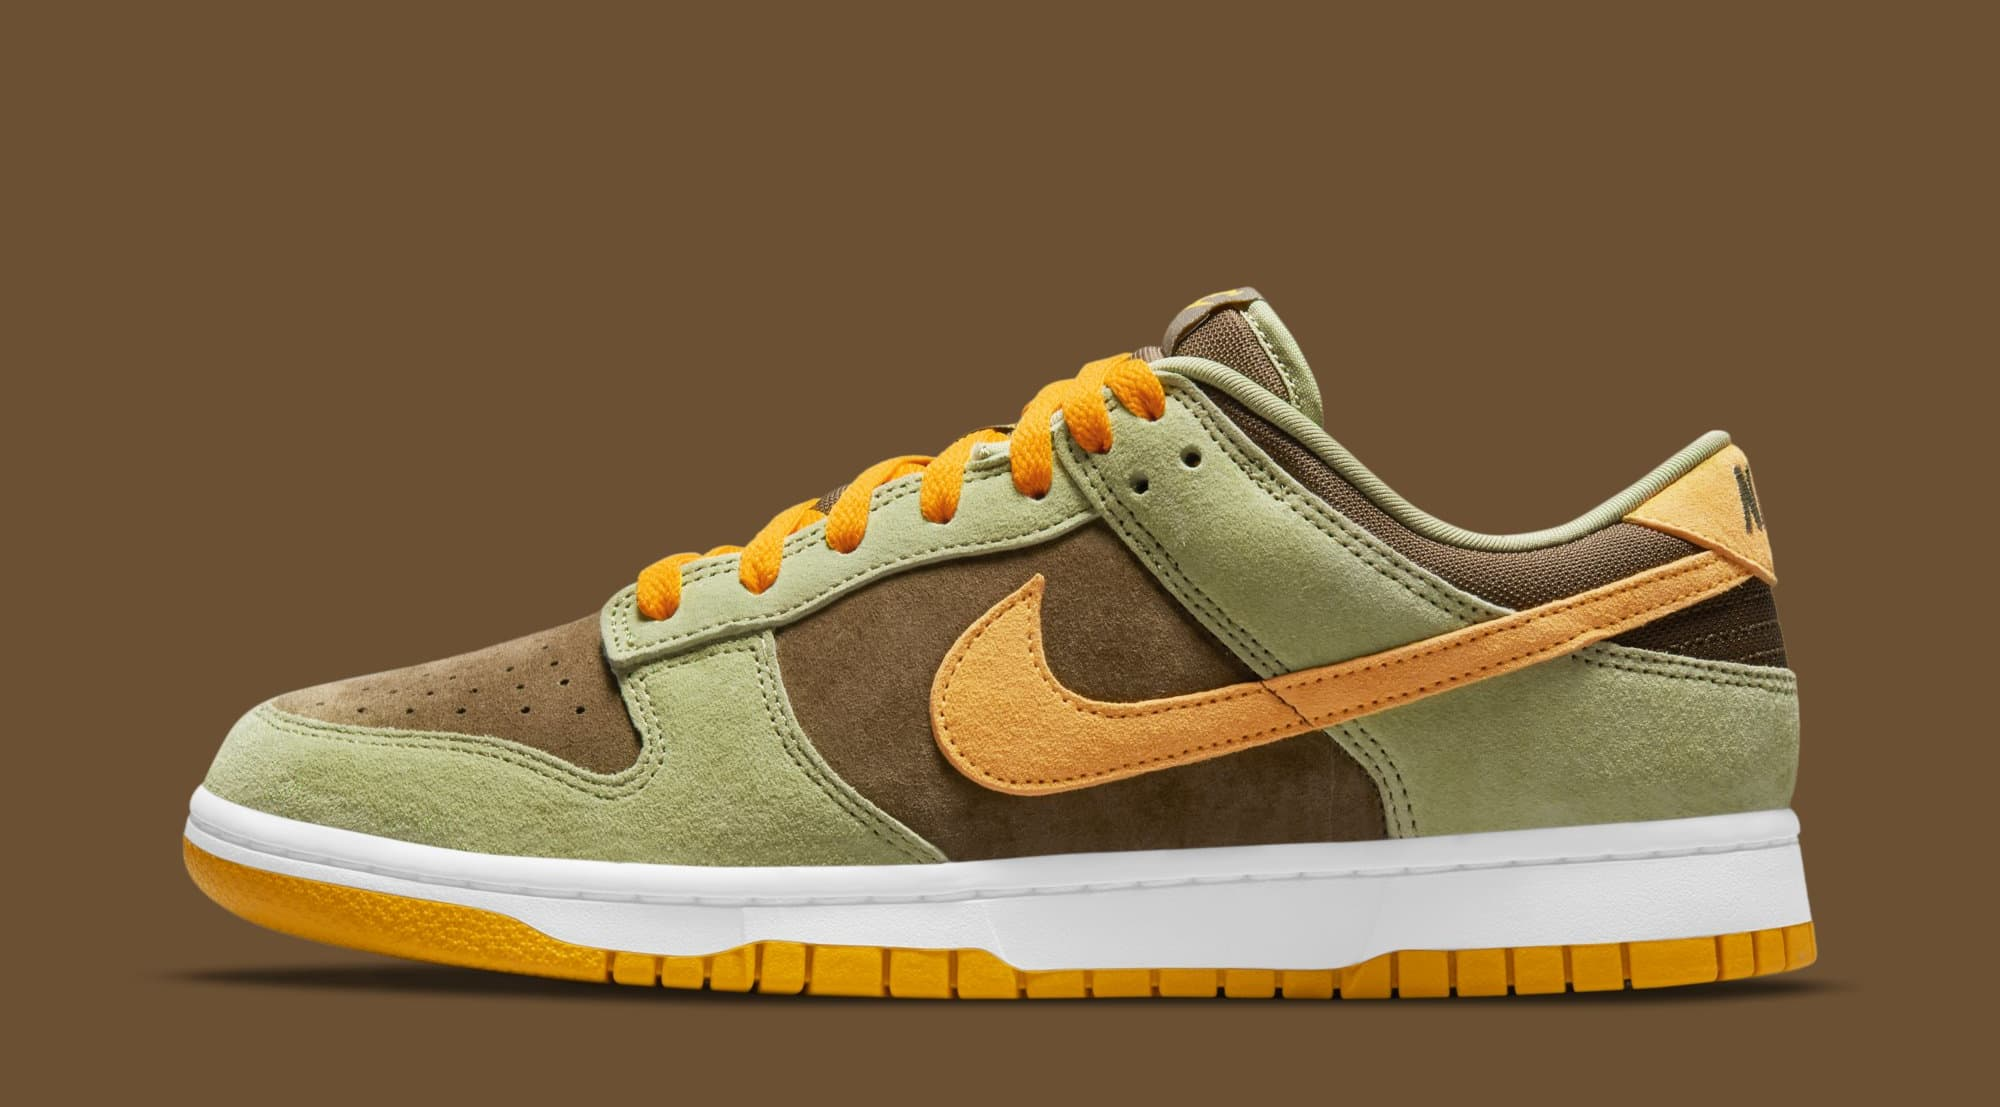 Nike Dunk Low 'Dusty Olive' DH5360-300 (Lateral)